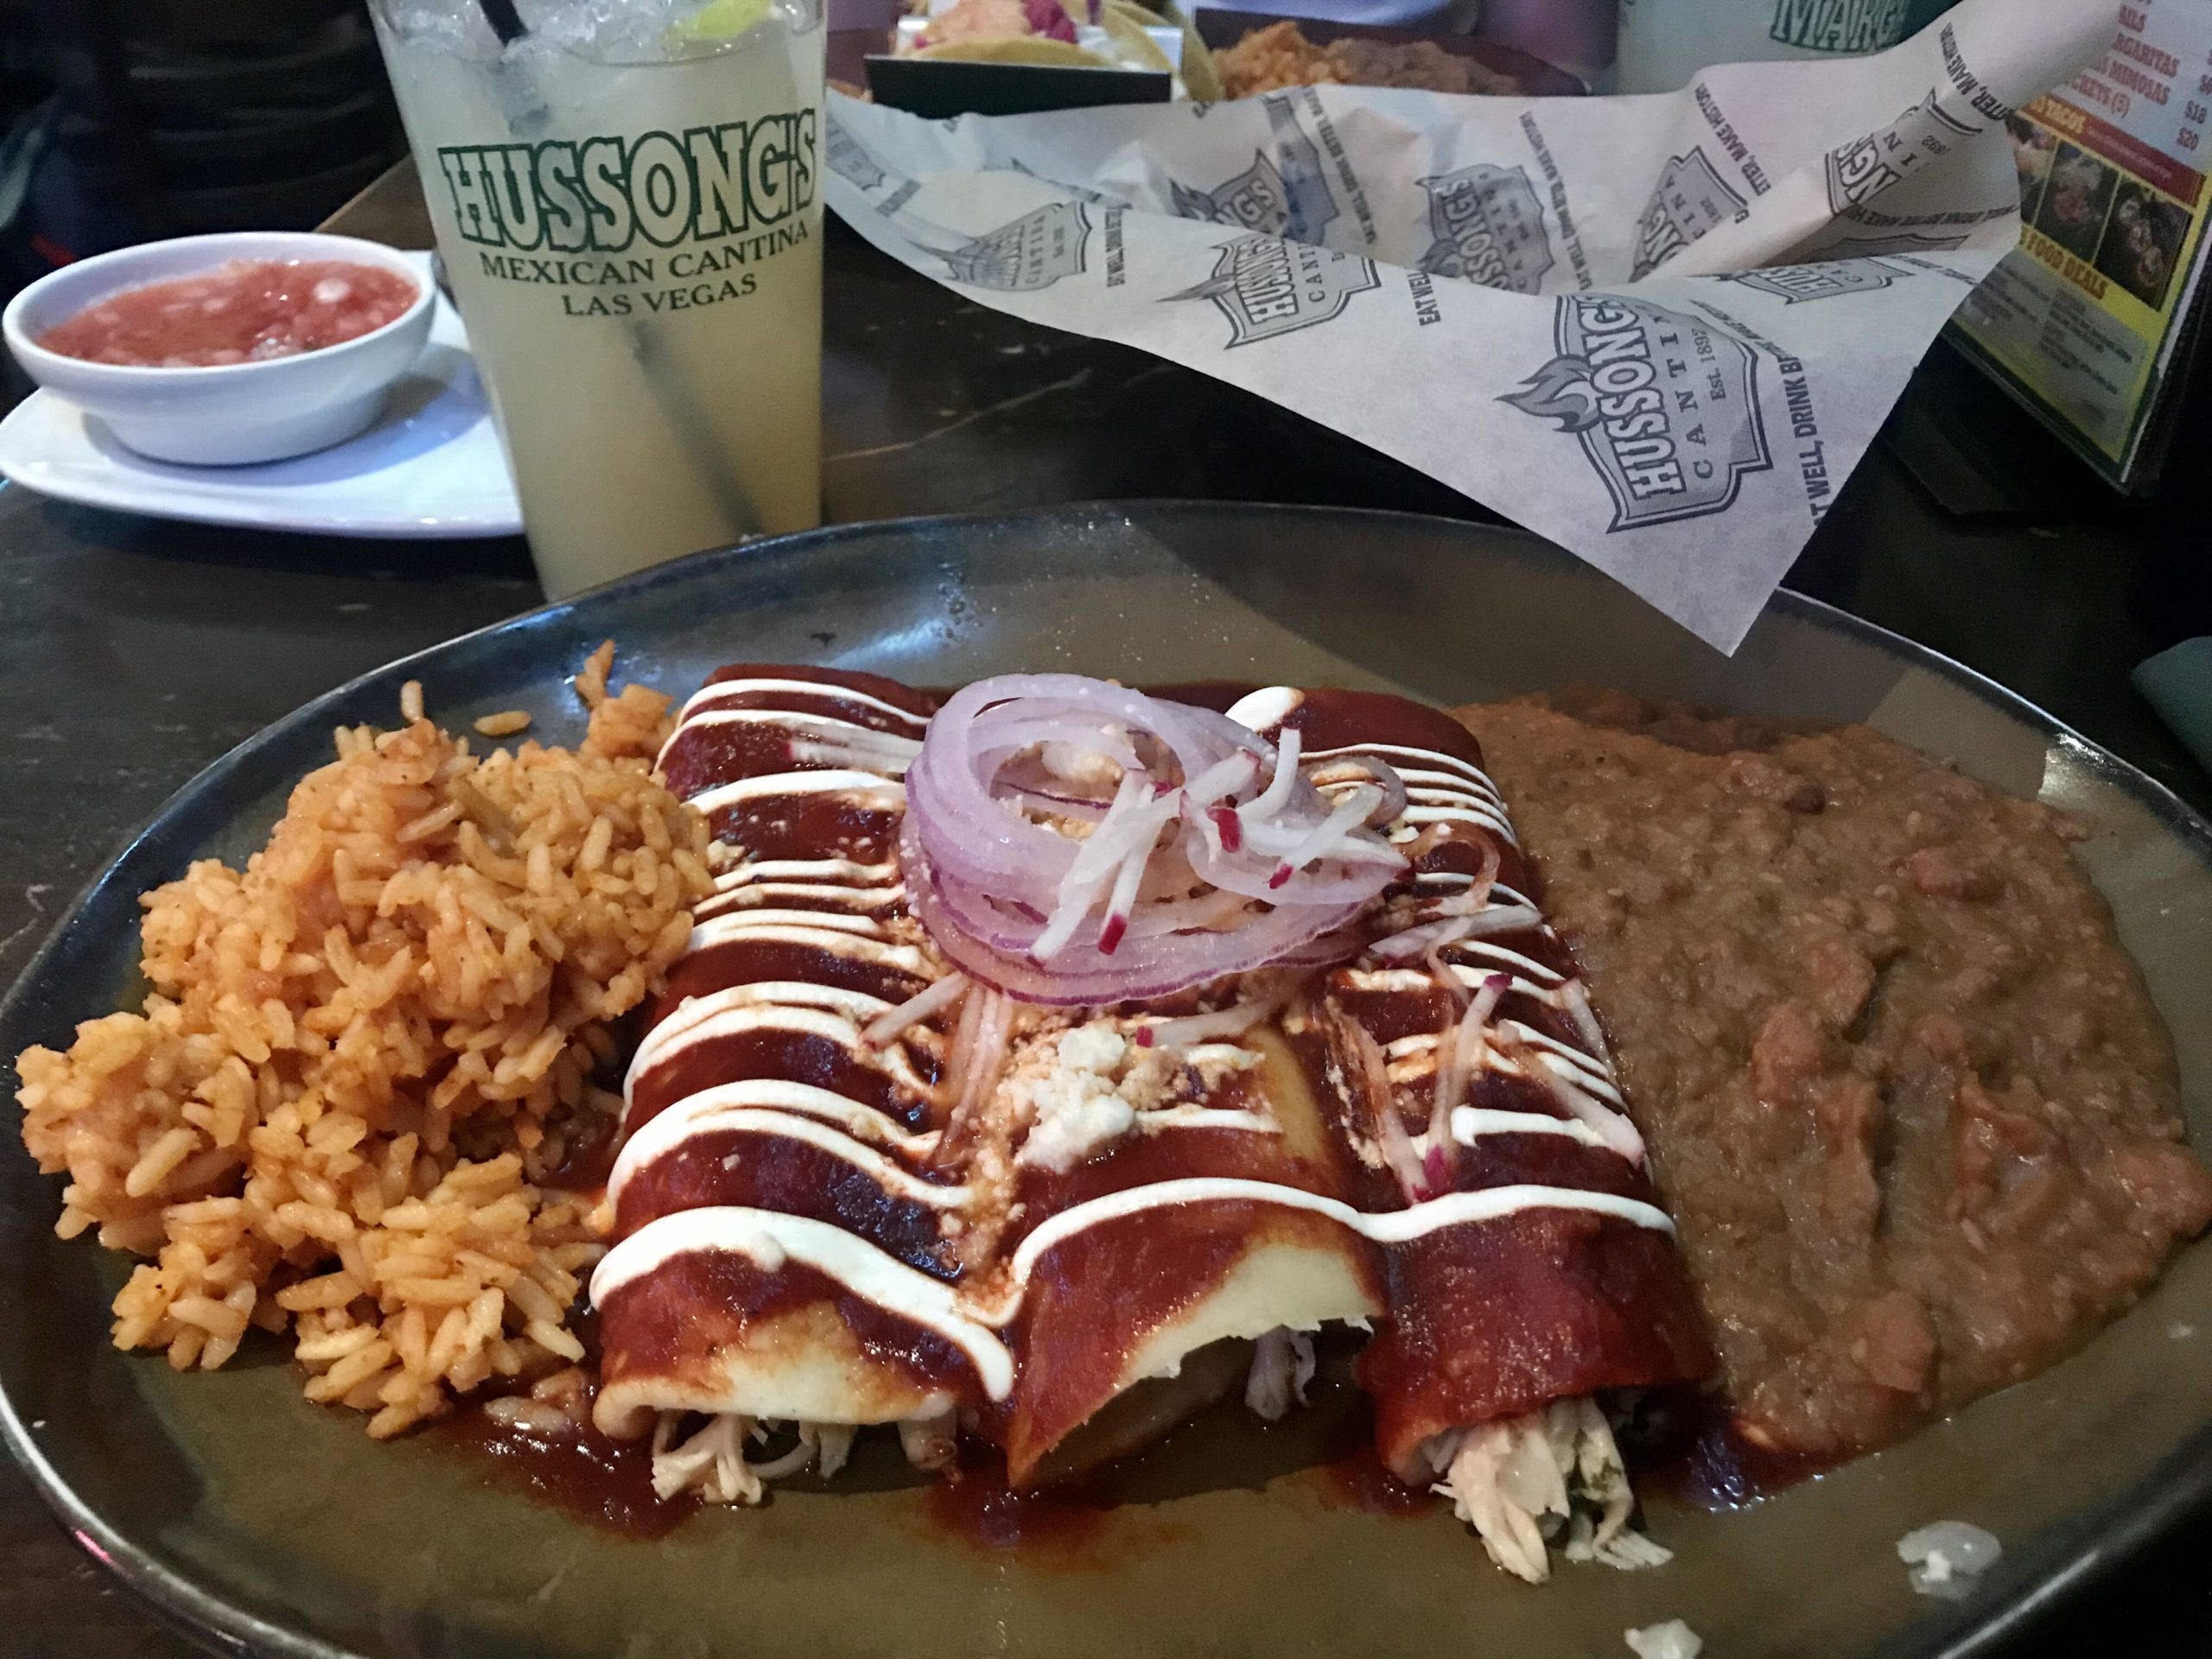 Where to eat in Las Vegas – Hussongs Cantina